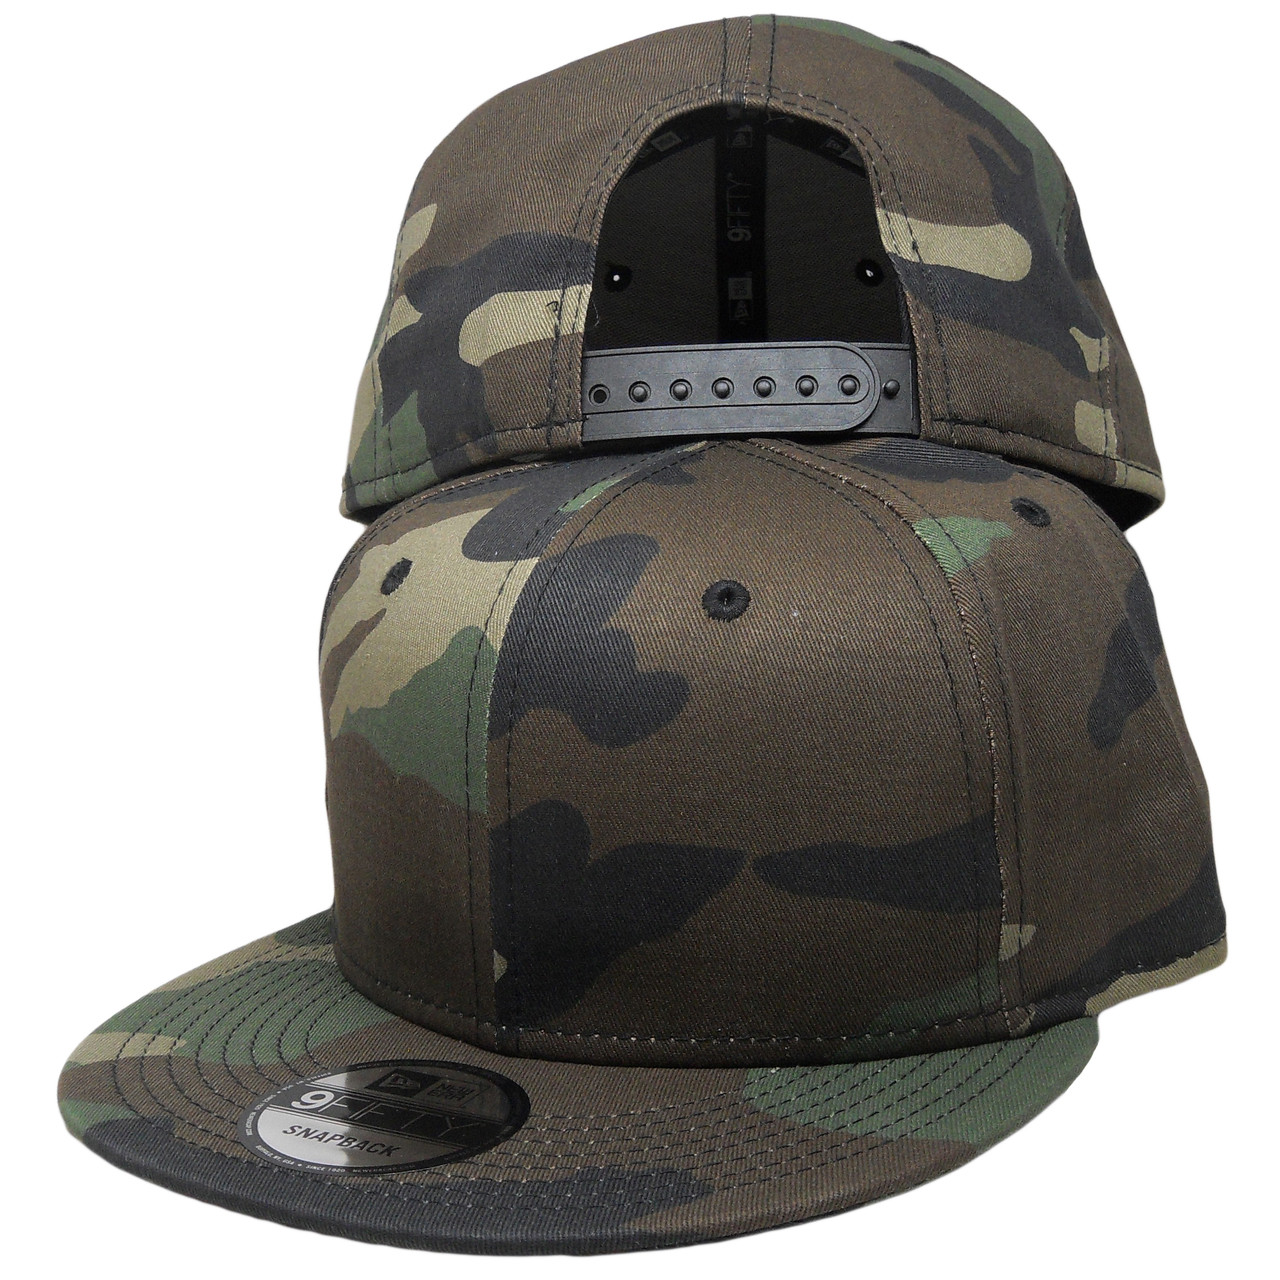 78132fe6de0 Plain Blank New Era 9Fifty Snapback Hat - All Camouflage -  ECapsUnlimited.com